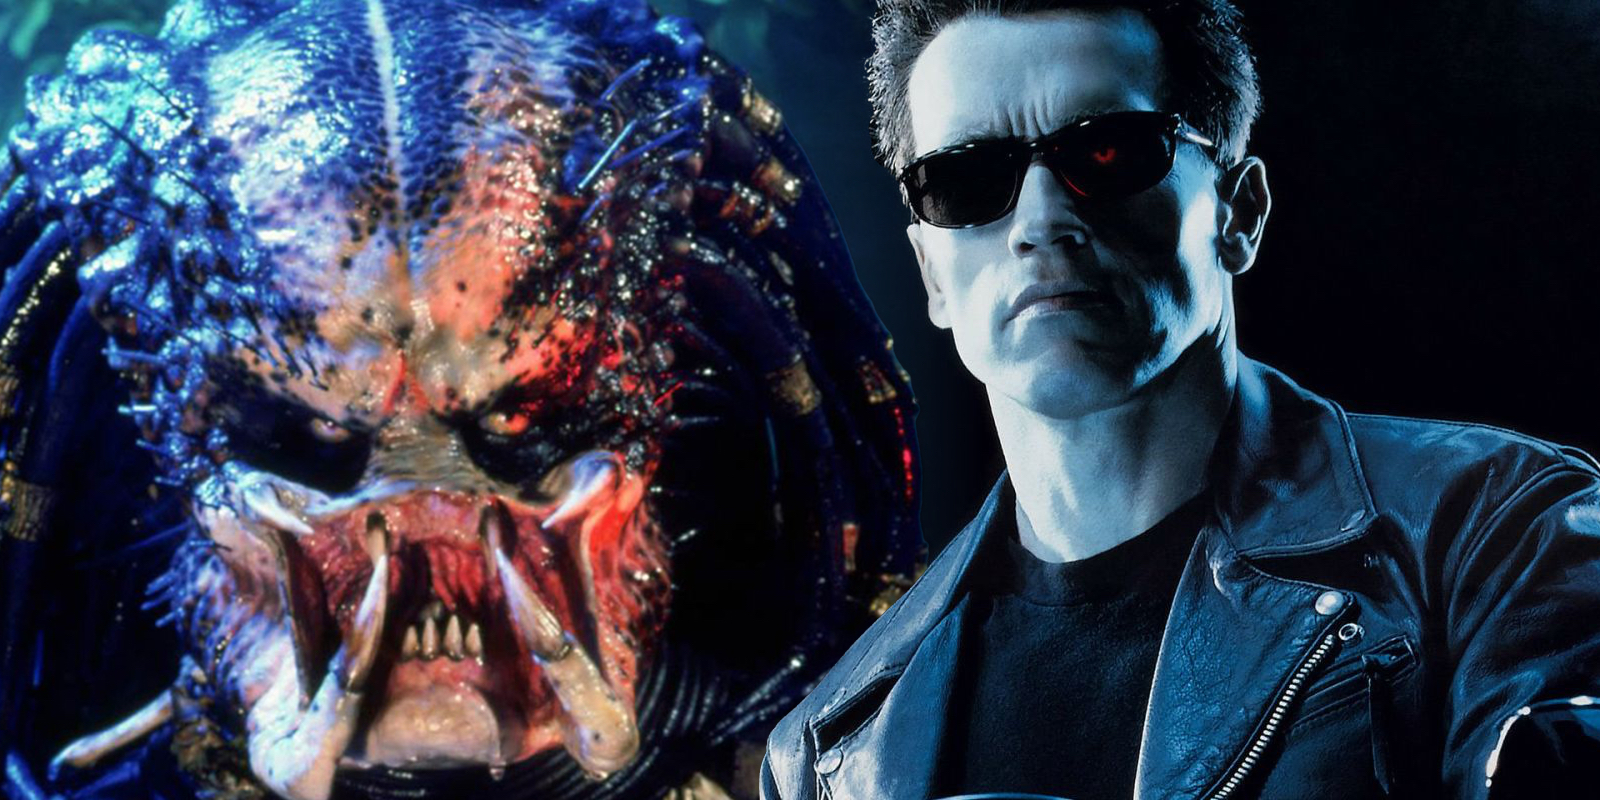 Fan Theory Suggests Terminator & Predator Exist in Same Movie Universe